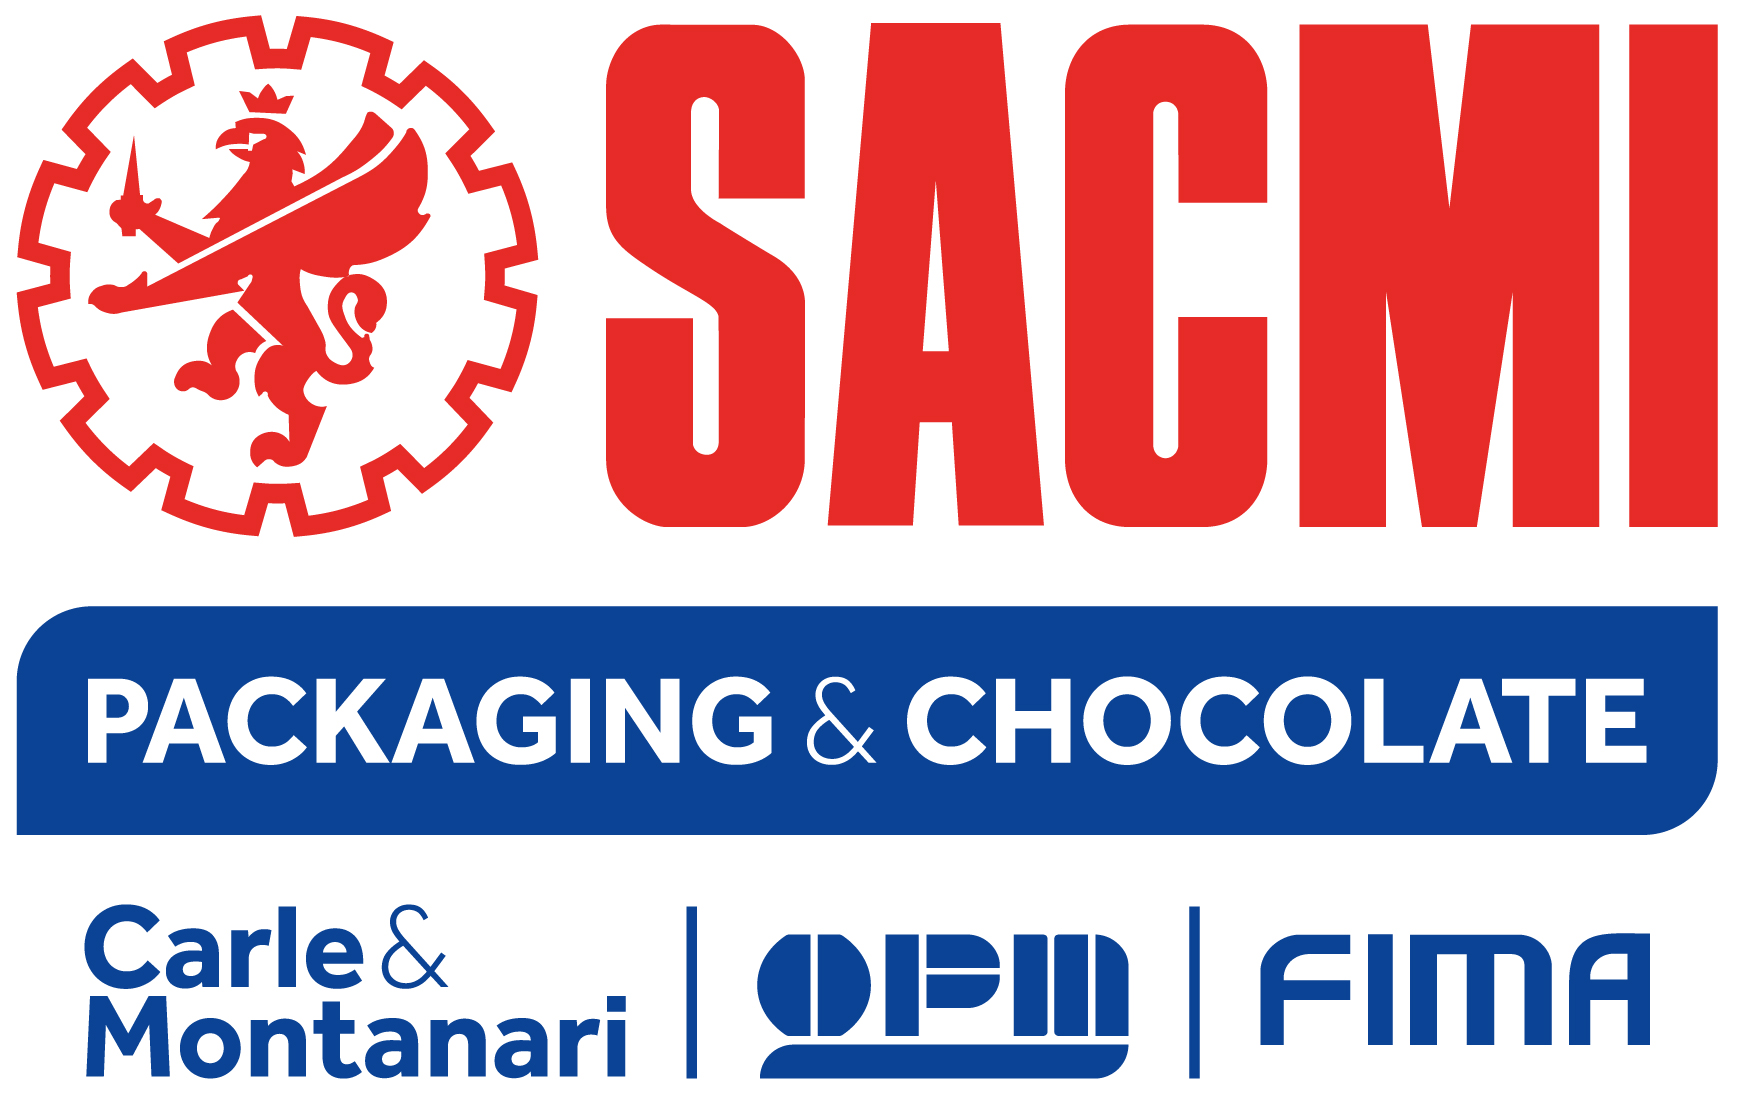 SACMI Packaging & Chocolate, tradition and innovation with a face to the future